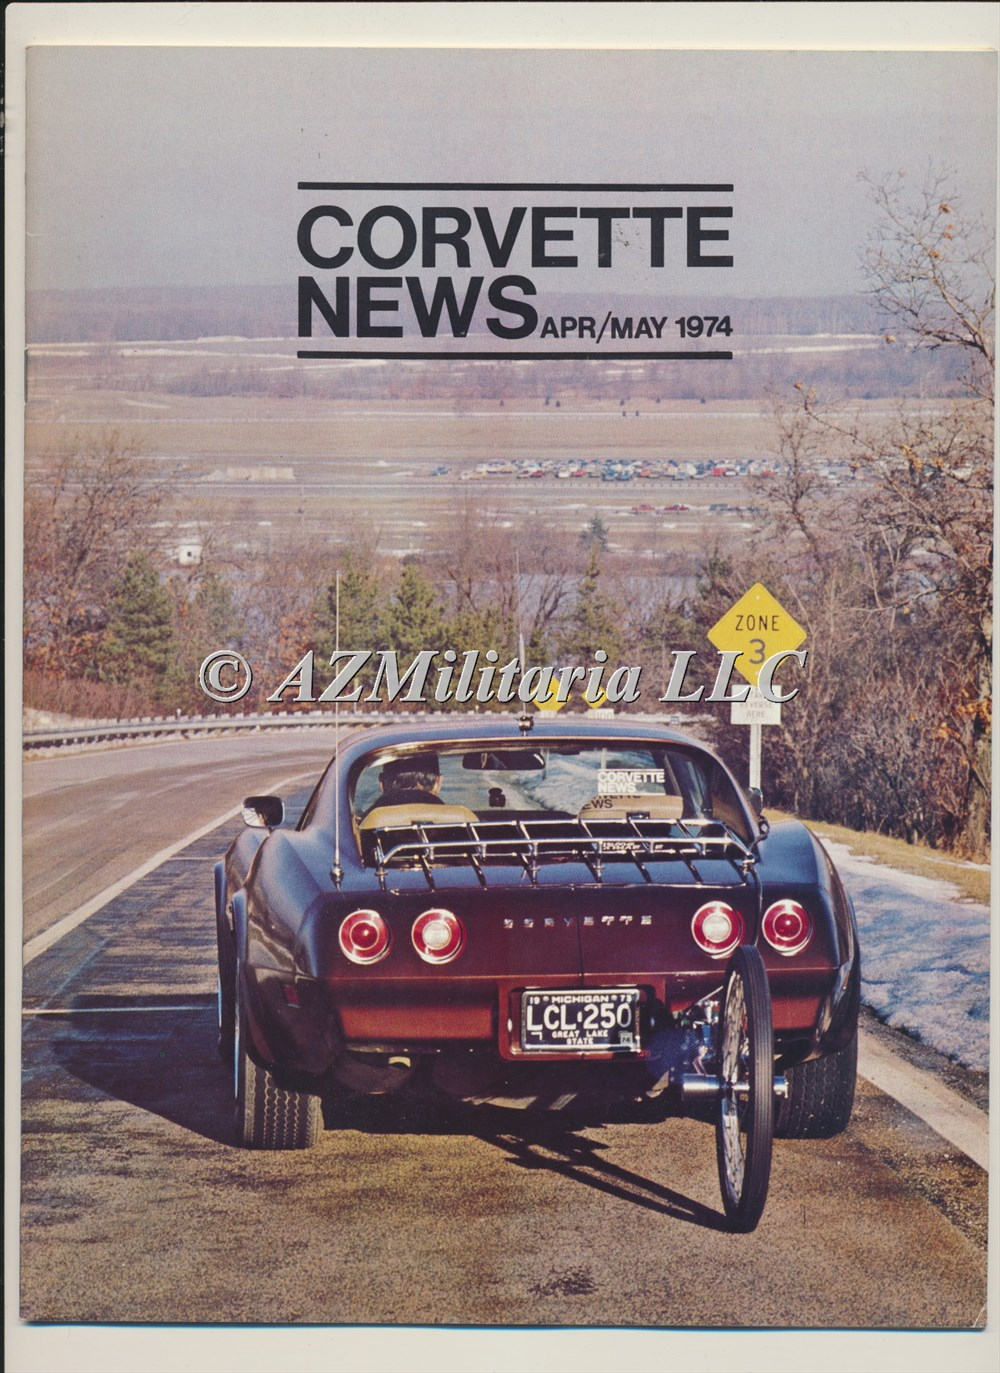 Primary image for Corvette News Apr/May 1974